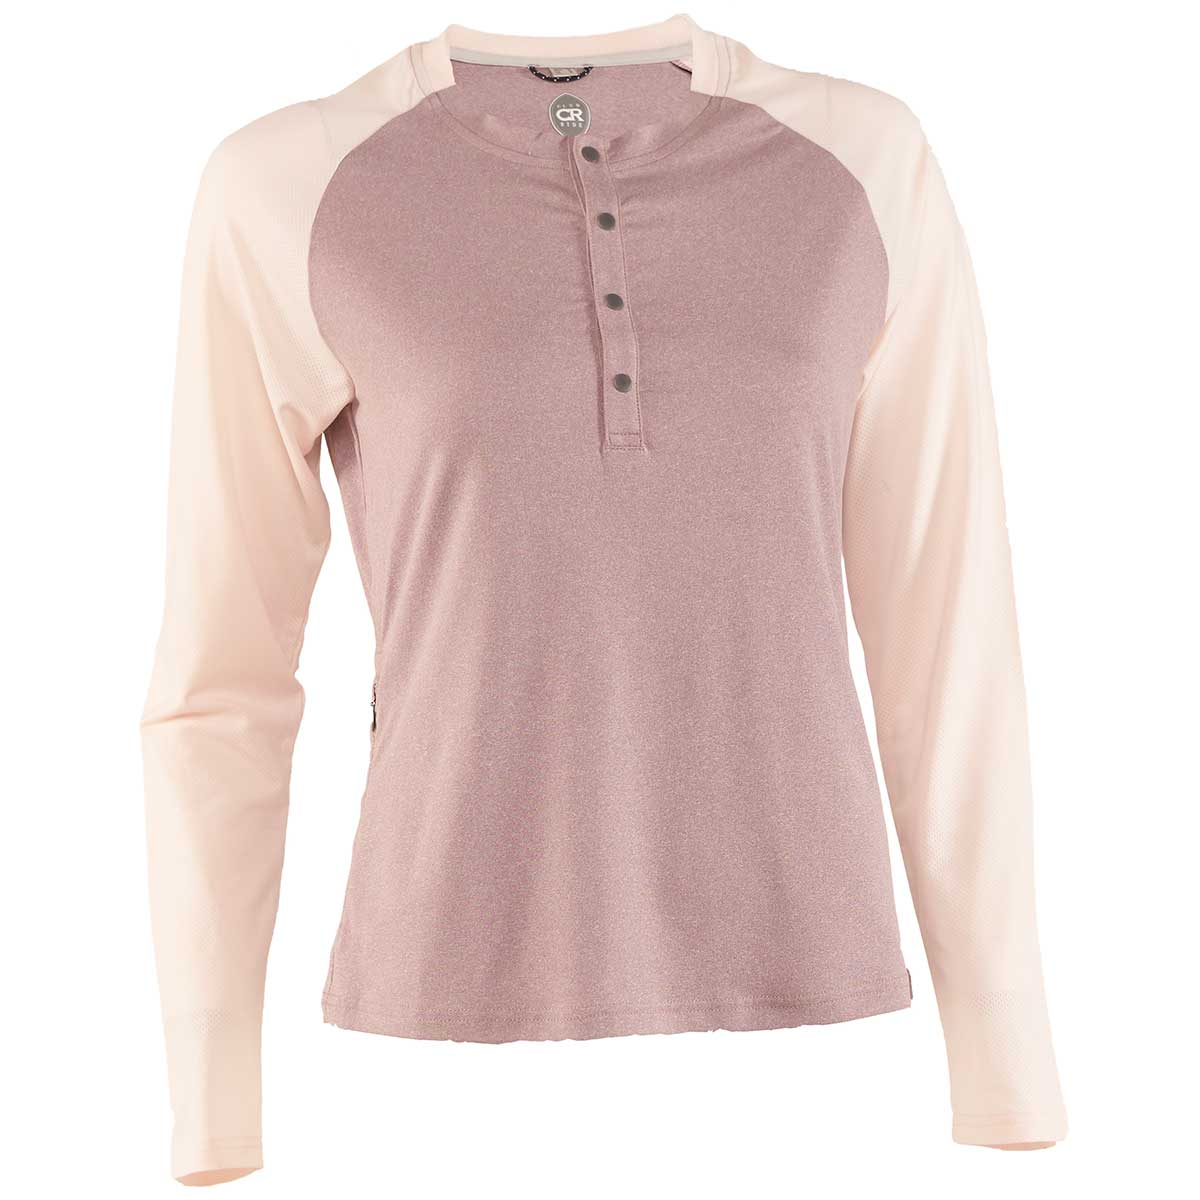 Club Ride women's Ida Long Sleeve Jersey in Elderberry and Dusty Pink